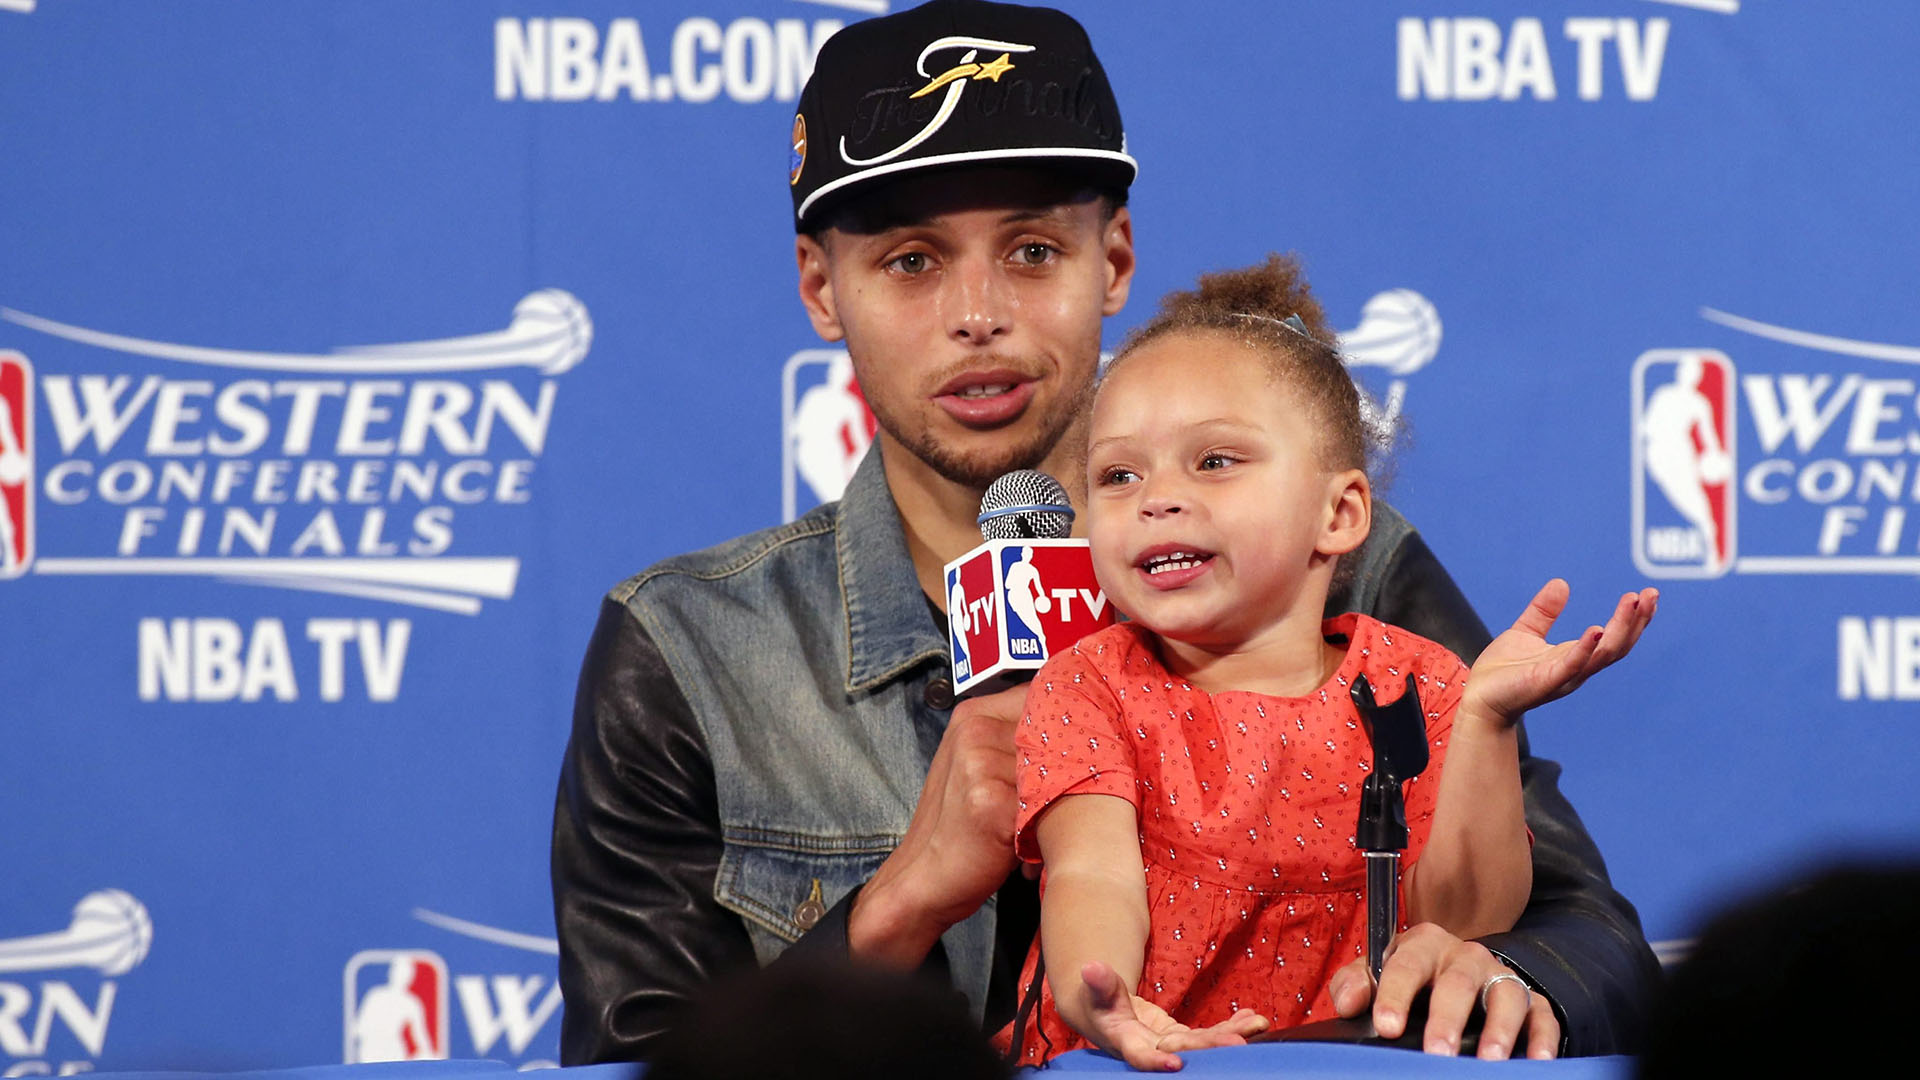 Stephen Curry's daughter steals press conference spotlight — again! - TODAY.com